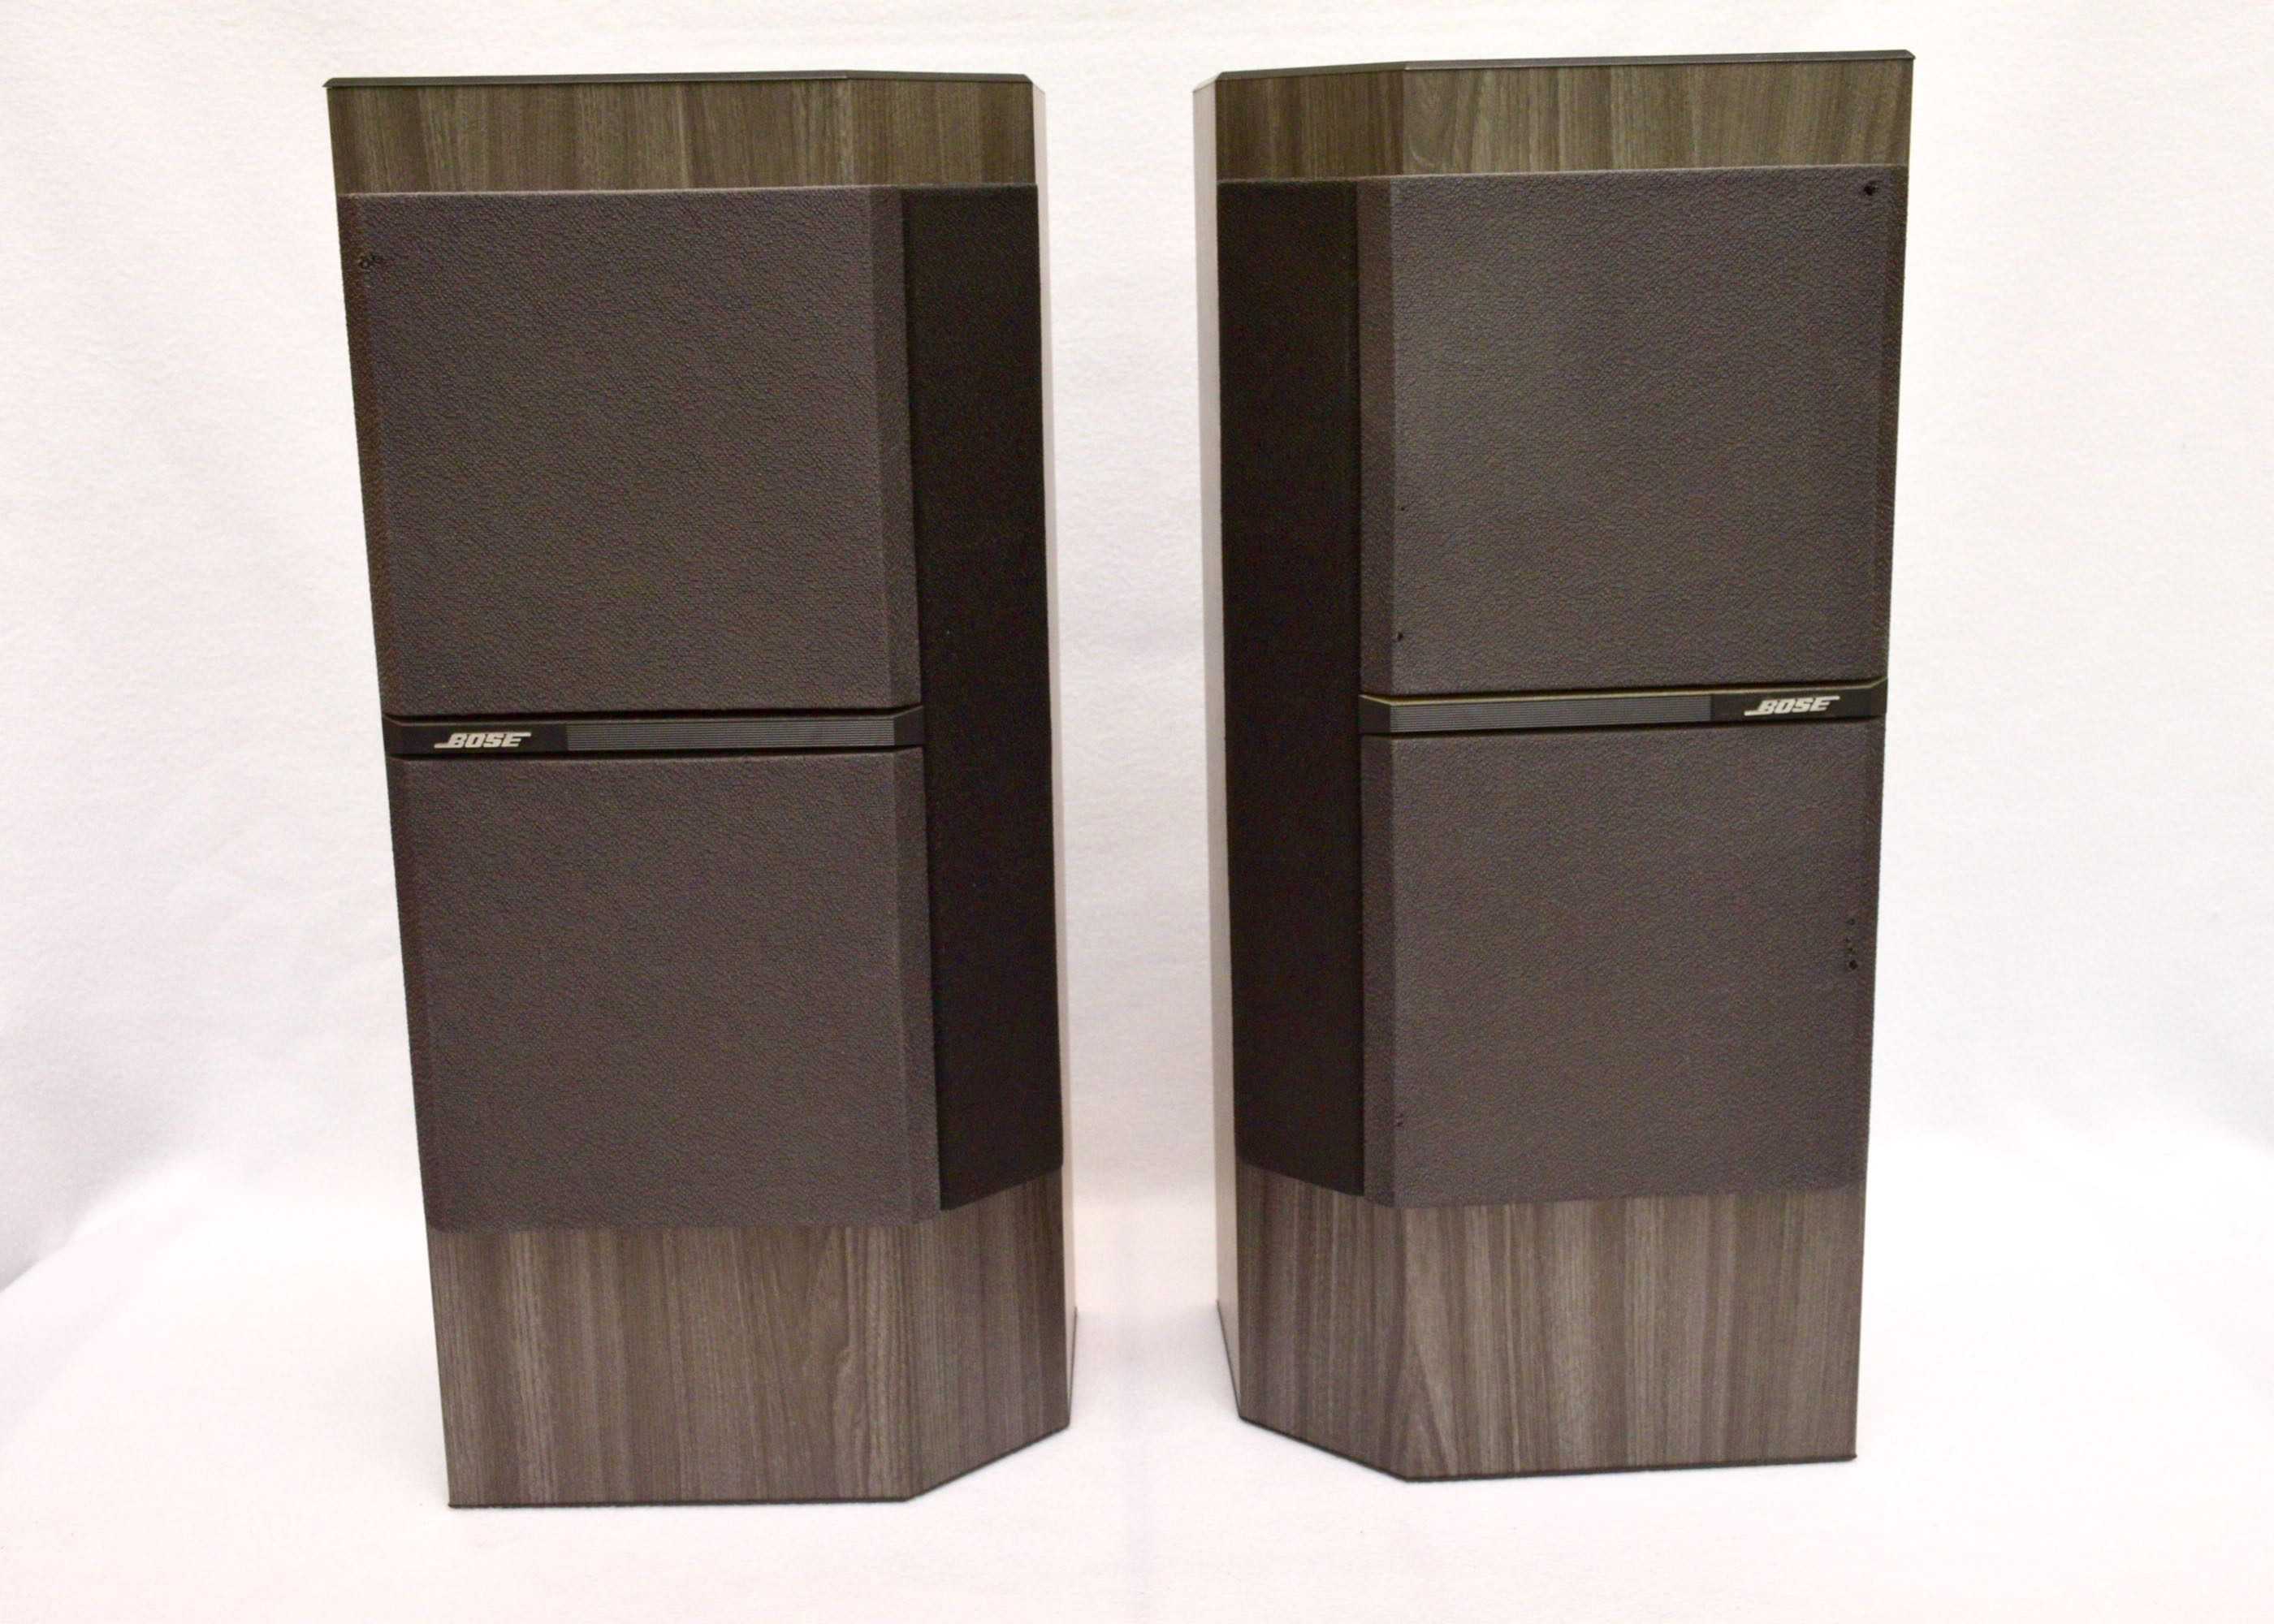 bose 4001. pair of bose 4001 direct/reflecting speakers a